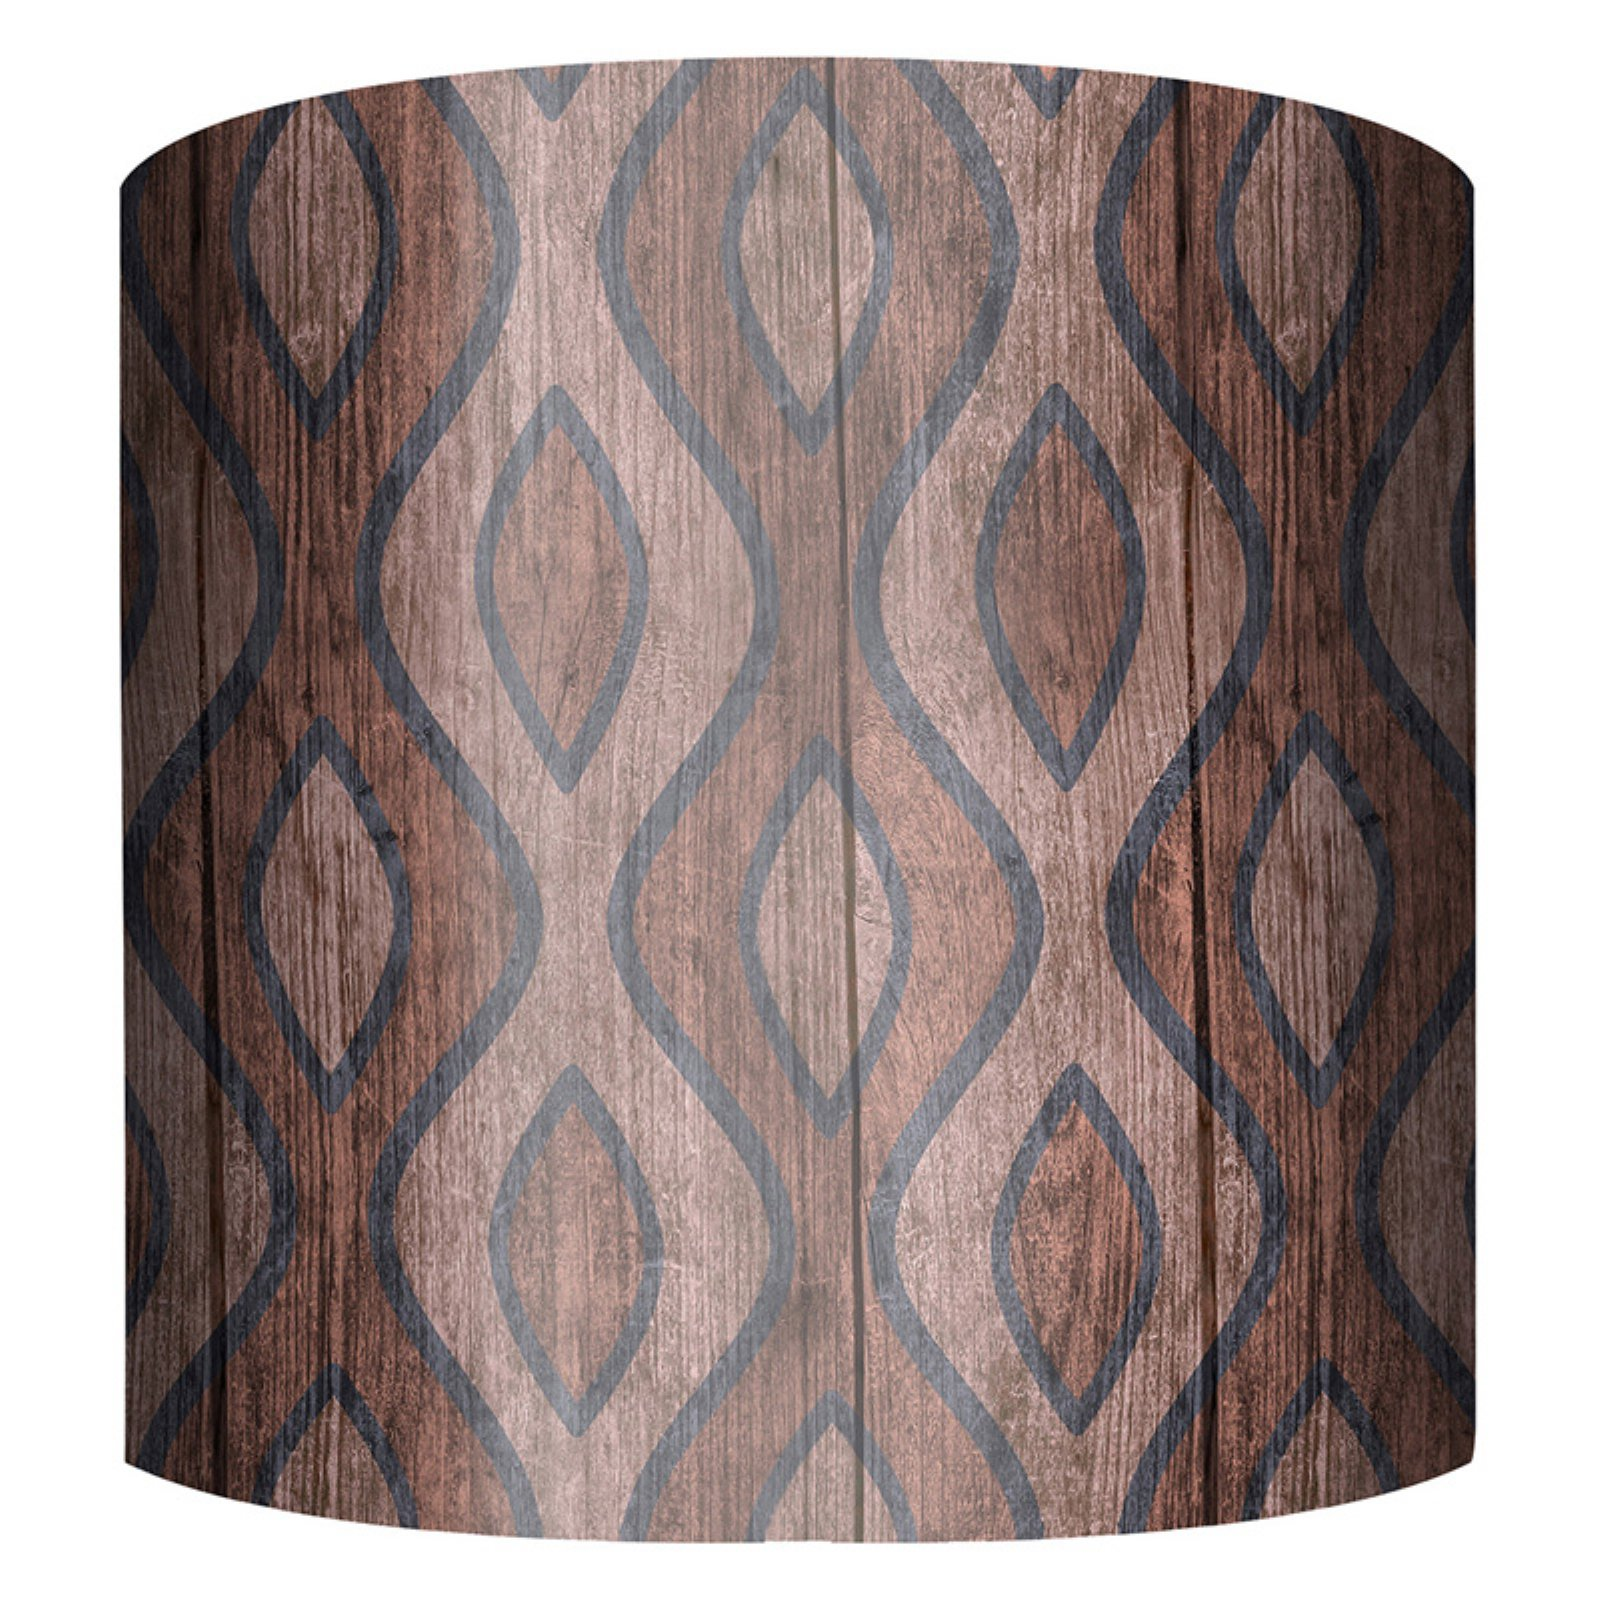 PTM Images Curves B Drum Lamp Shade